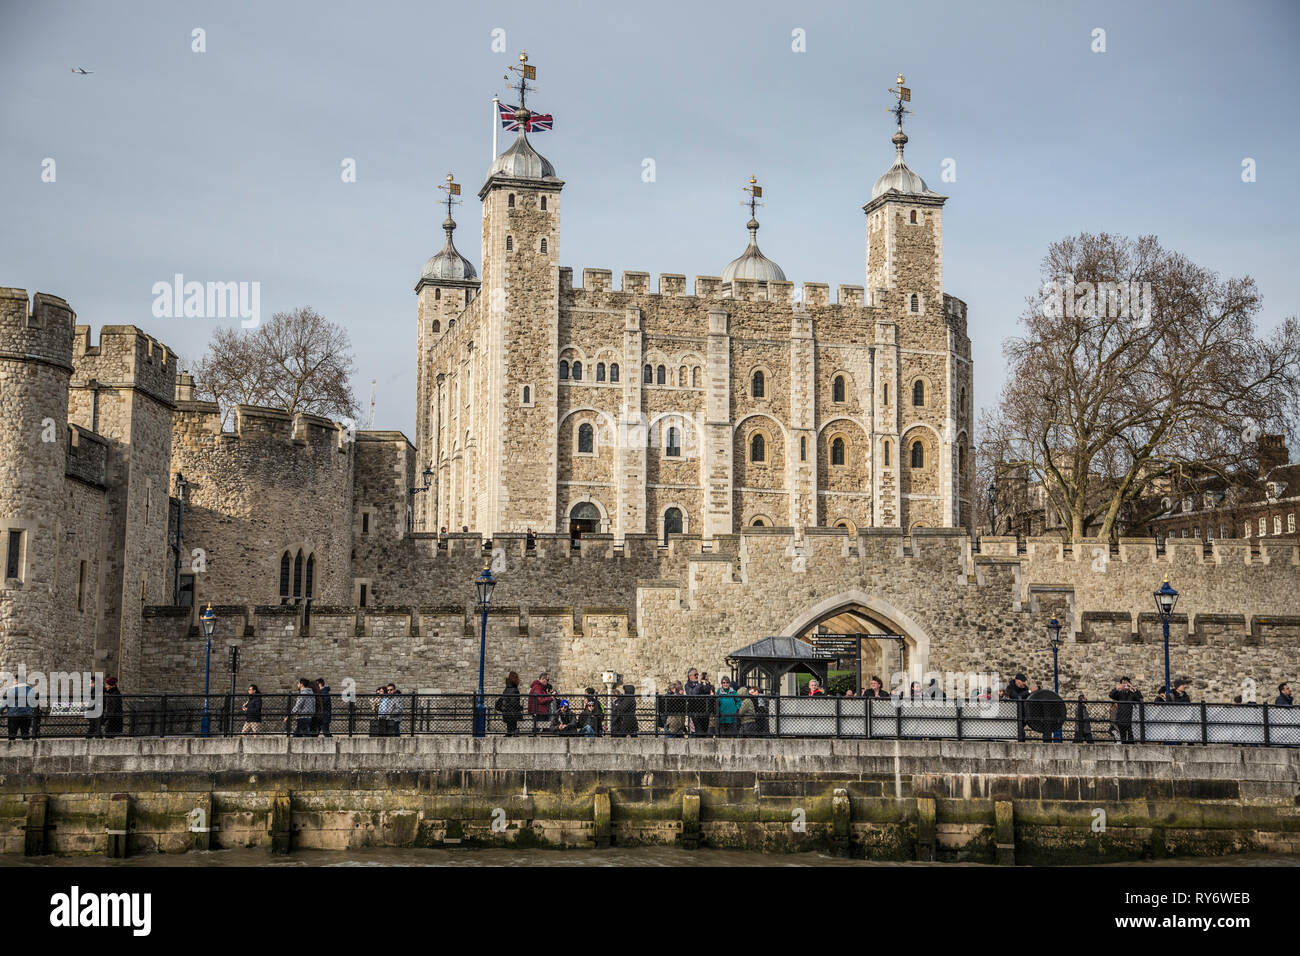 Tower of London, officially Her Majesty's Royal Palace  and Fortress, the historic estate home to the Crown Jewels, London, England, UK - Stock Image